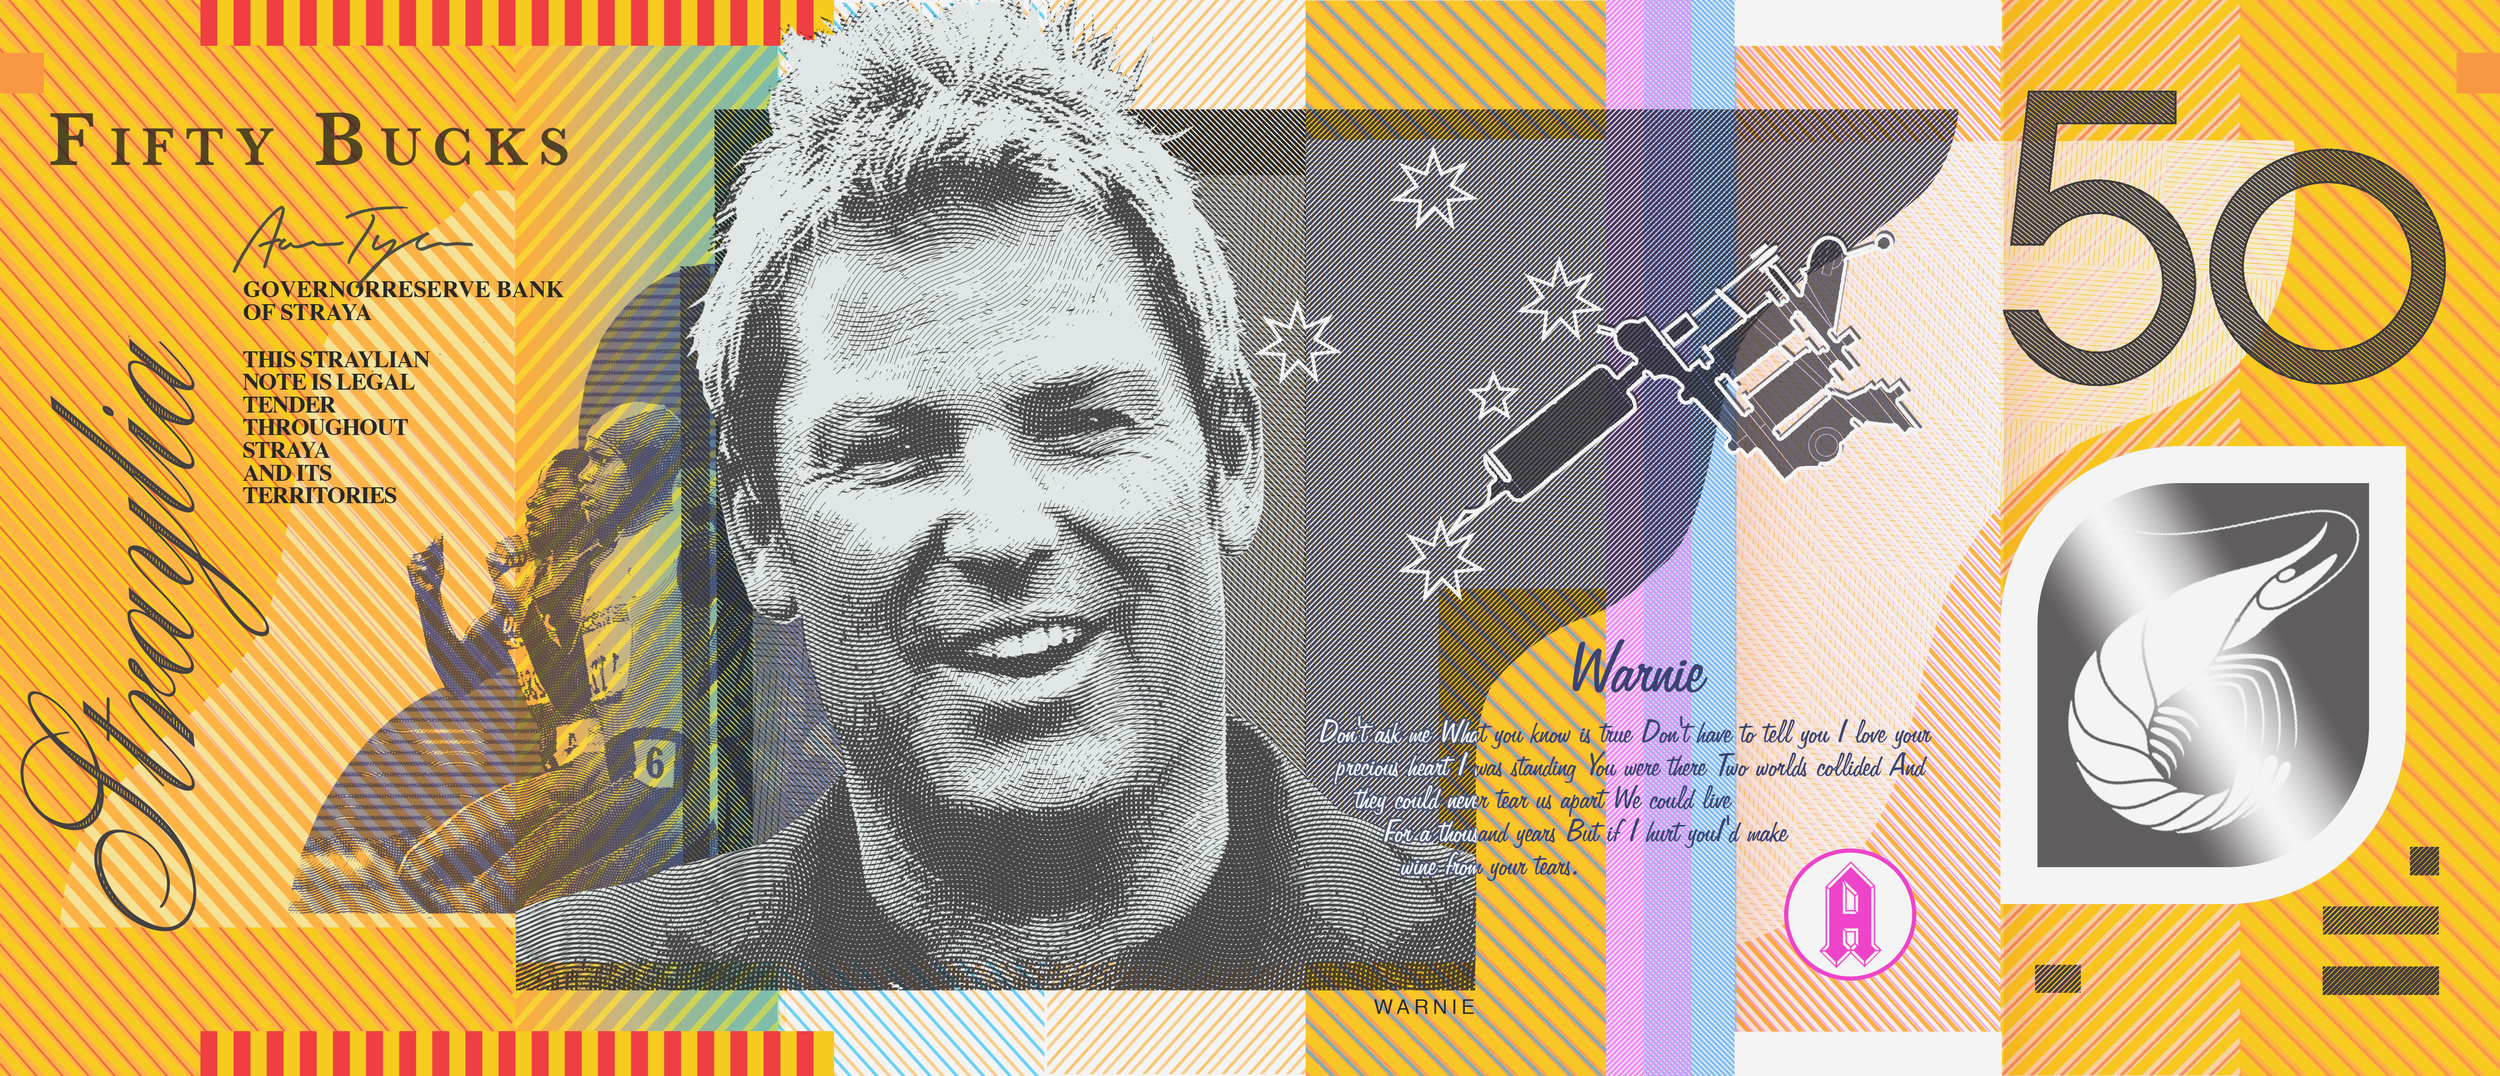 Shane Warne, Cathy Freeman, Southern Cross tattoo, and Shrimps on the Barbee.